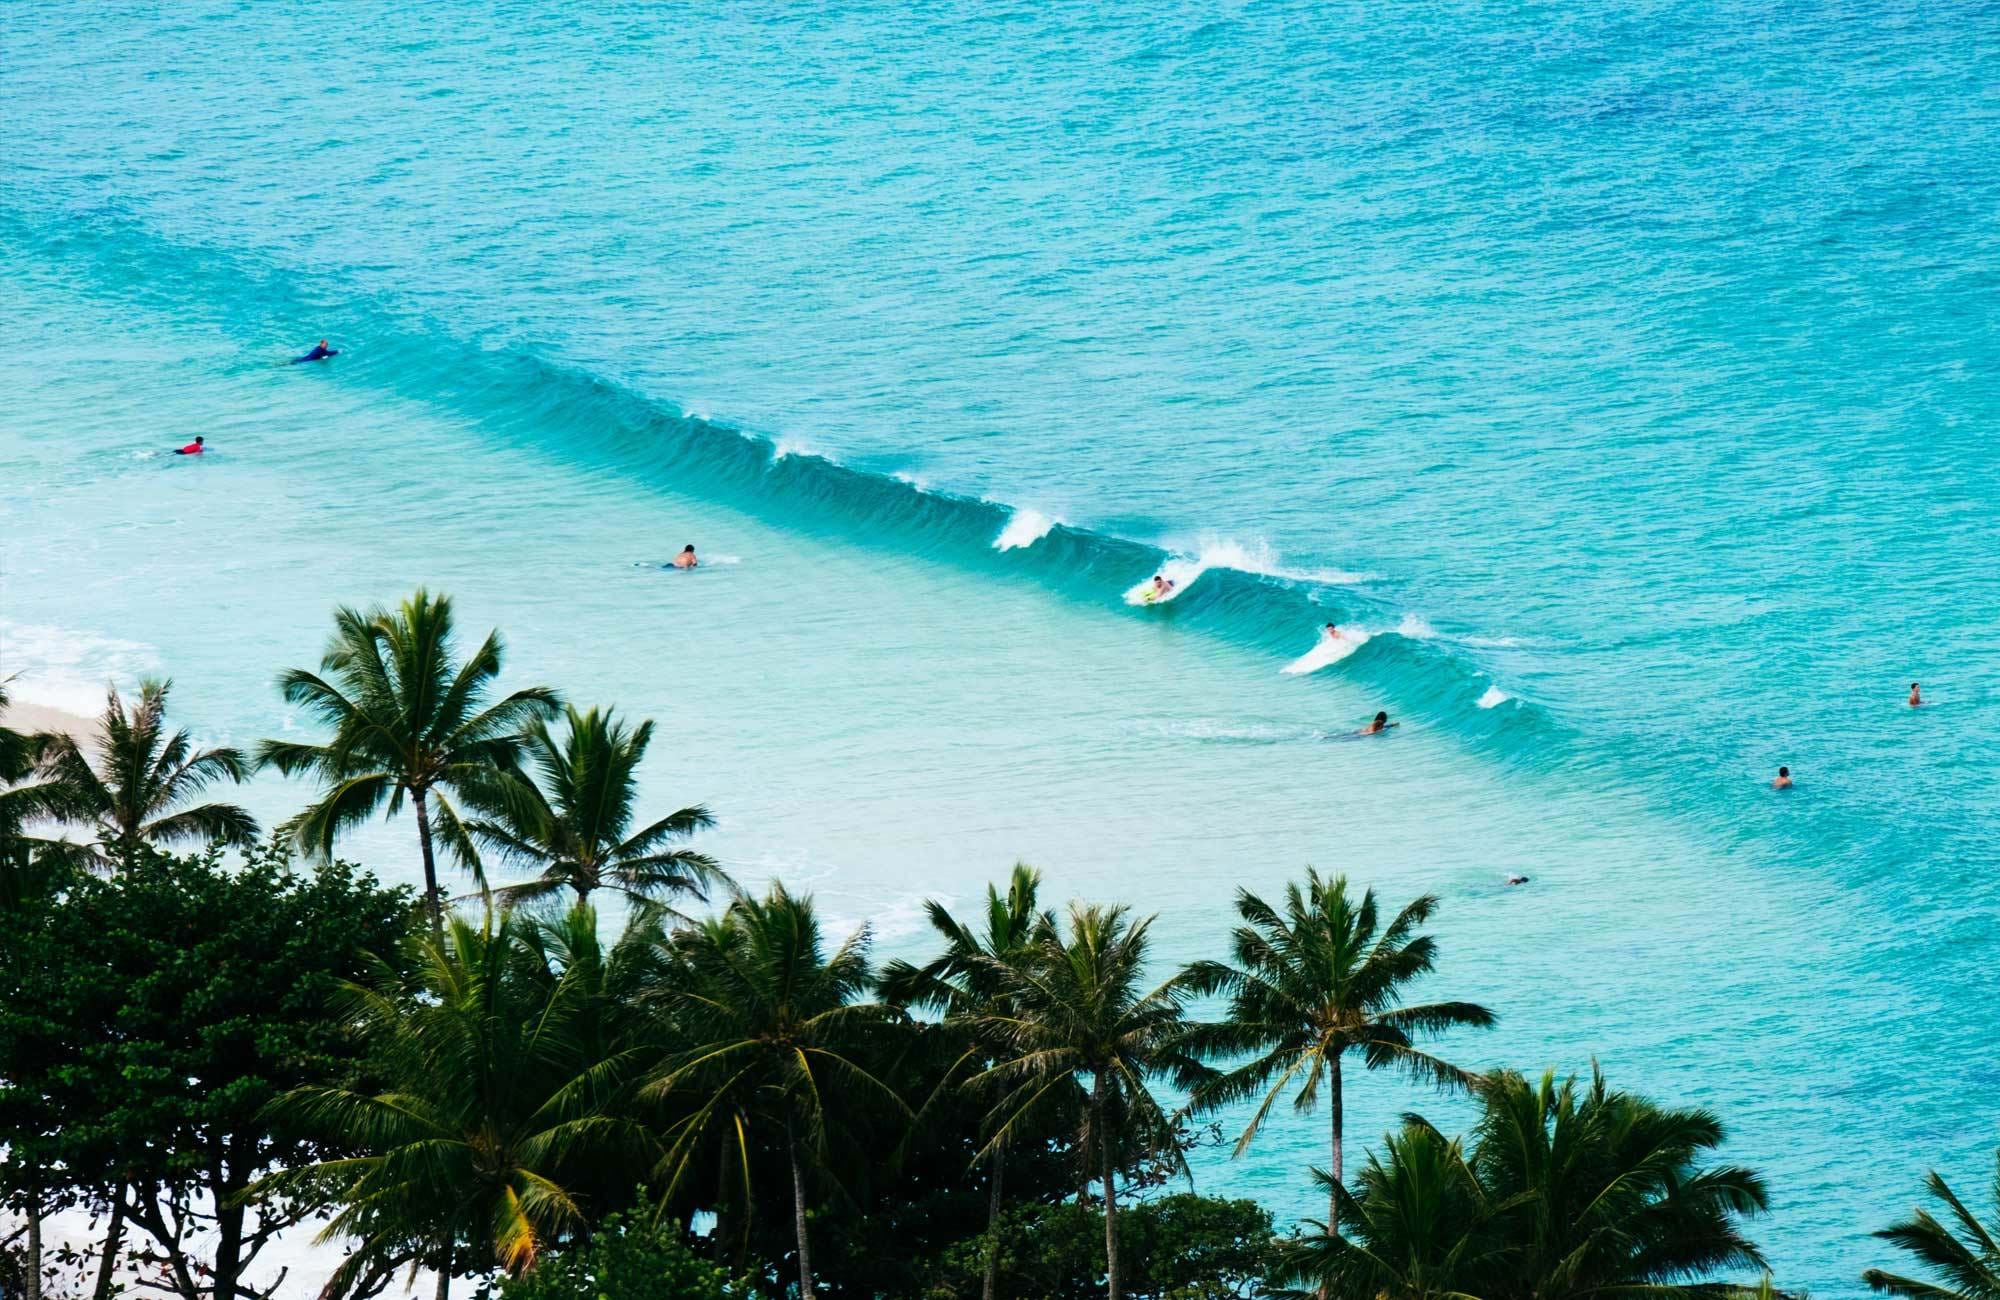 Surfers waiting for long soft waves and great swell in Panama, Central America